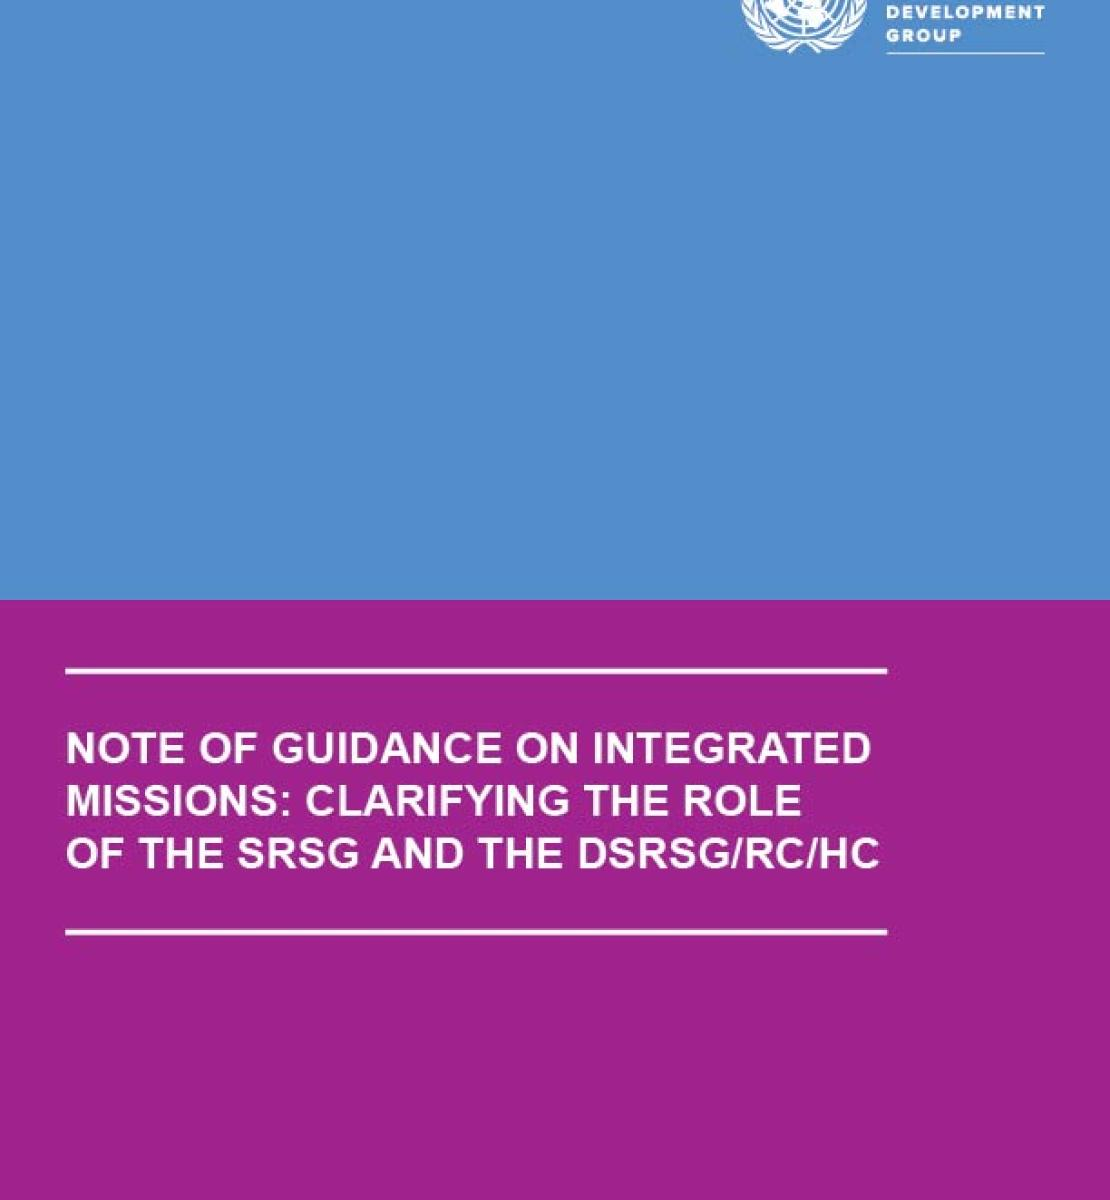 Note of Guidance on Integrated Missions: clarifying the role of the SRSG and the DSRSG/RC/HC